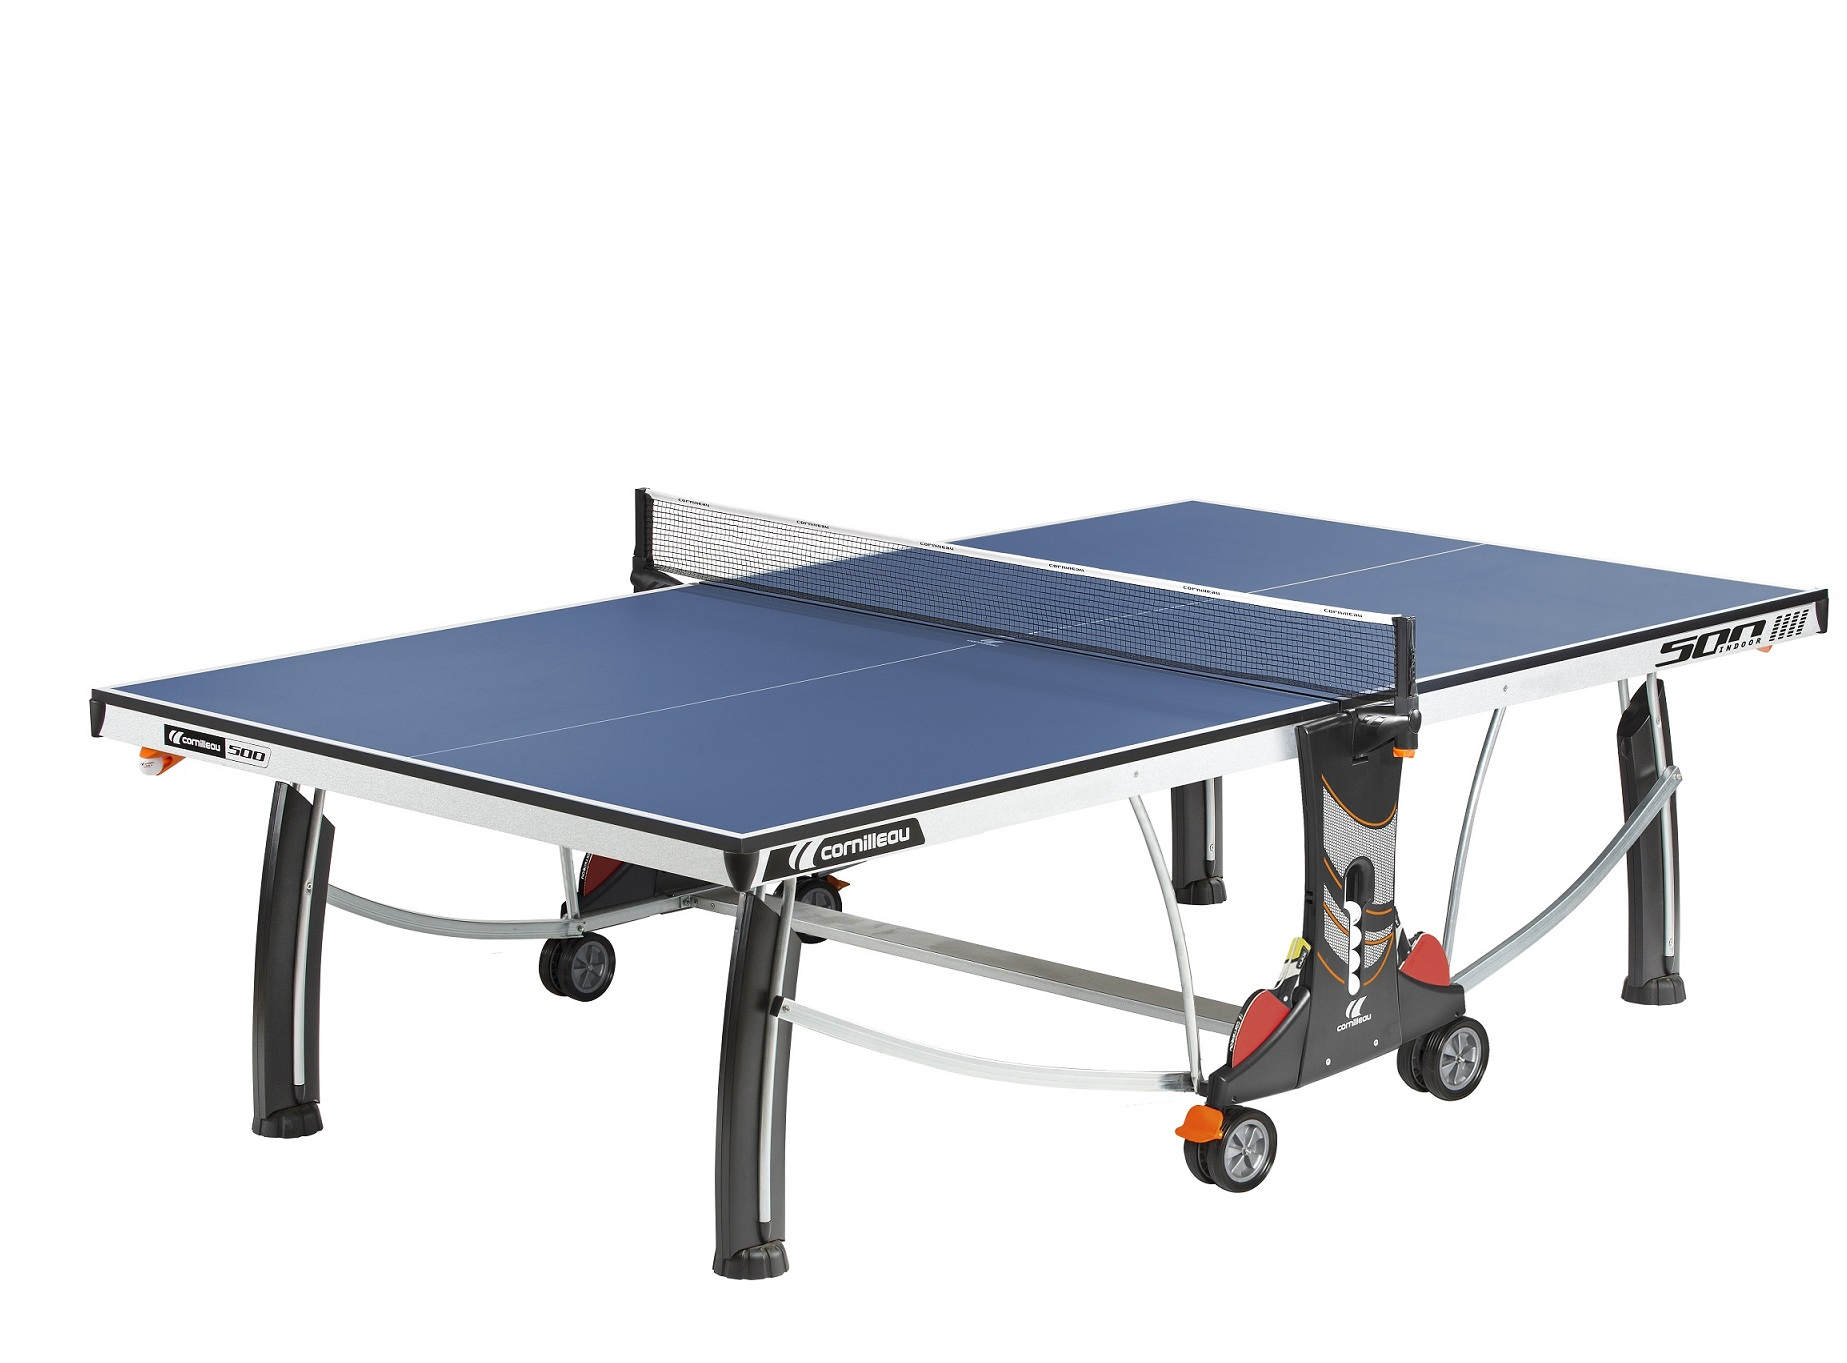 cornilleau 500 indoor ping pong table. Black Bedroom Furniture Sets. Home Design Ideas